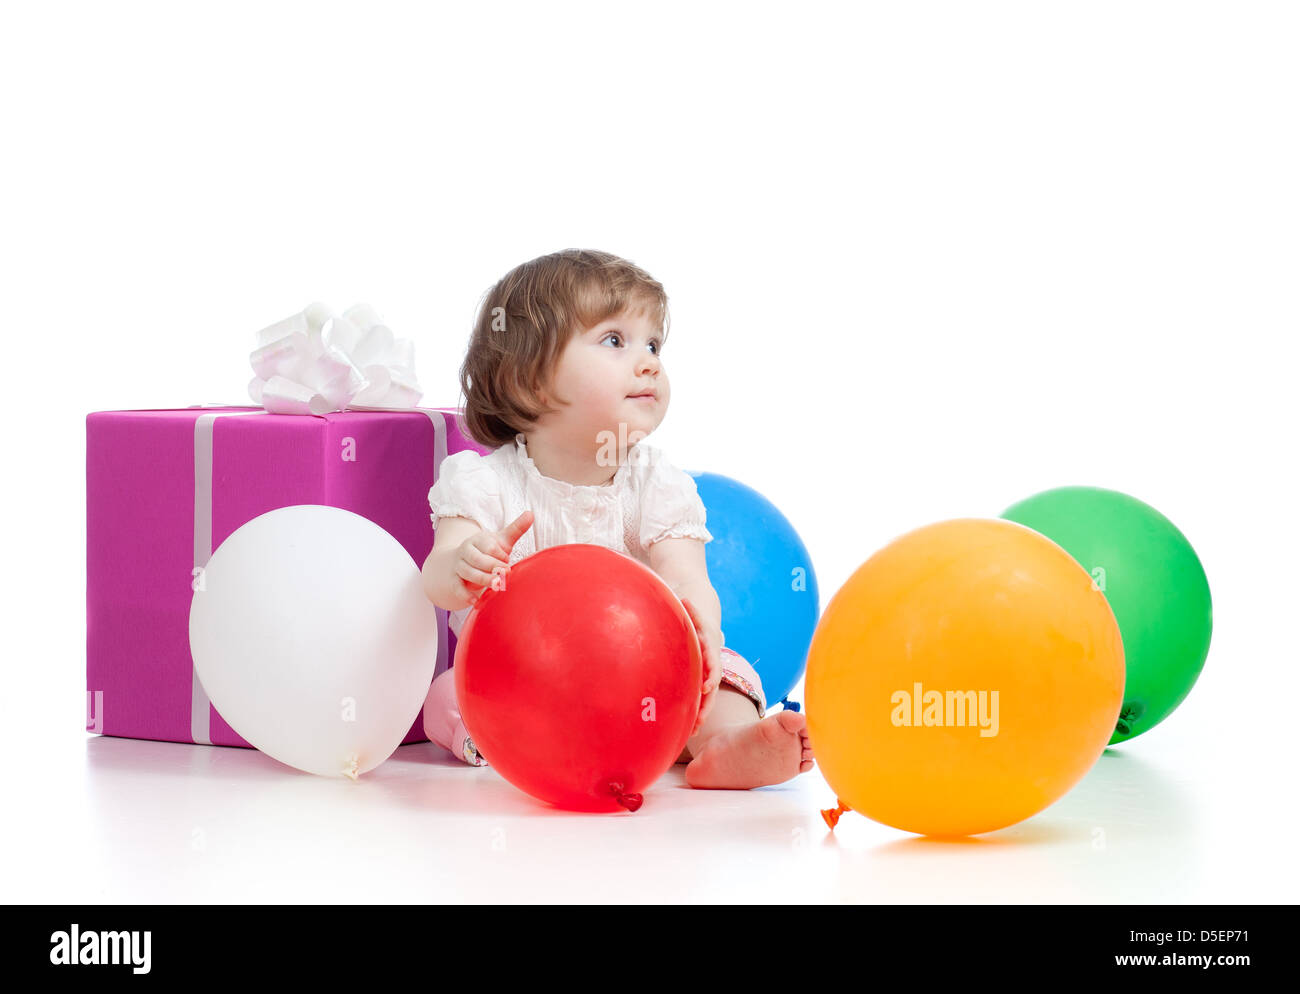 girl with colorful balloons and gift. Isolated on white. - Stock Image